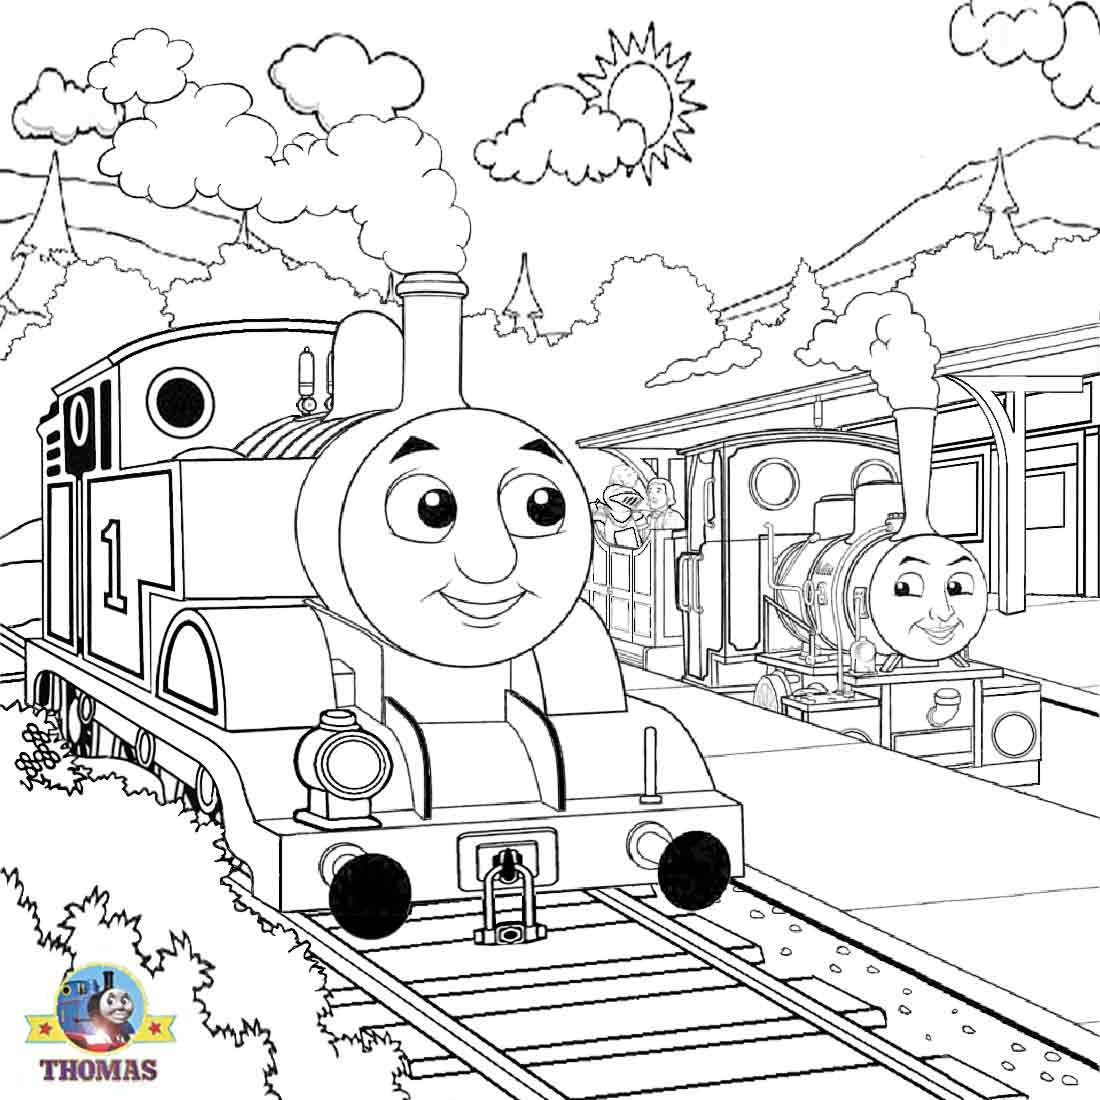 Thomas The Train And Friends Coloring Pages At Getcoloringscom